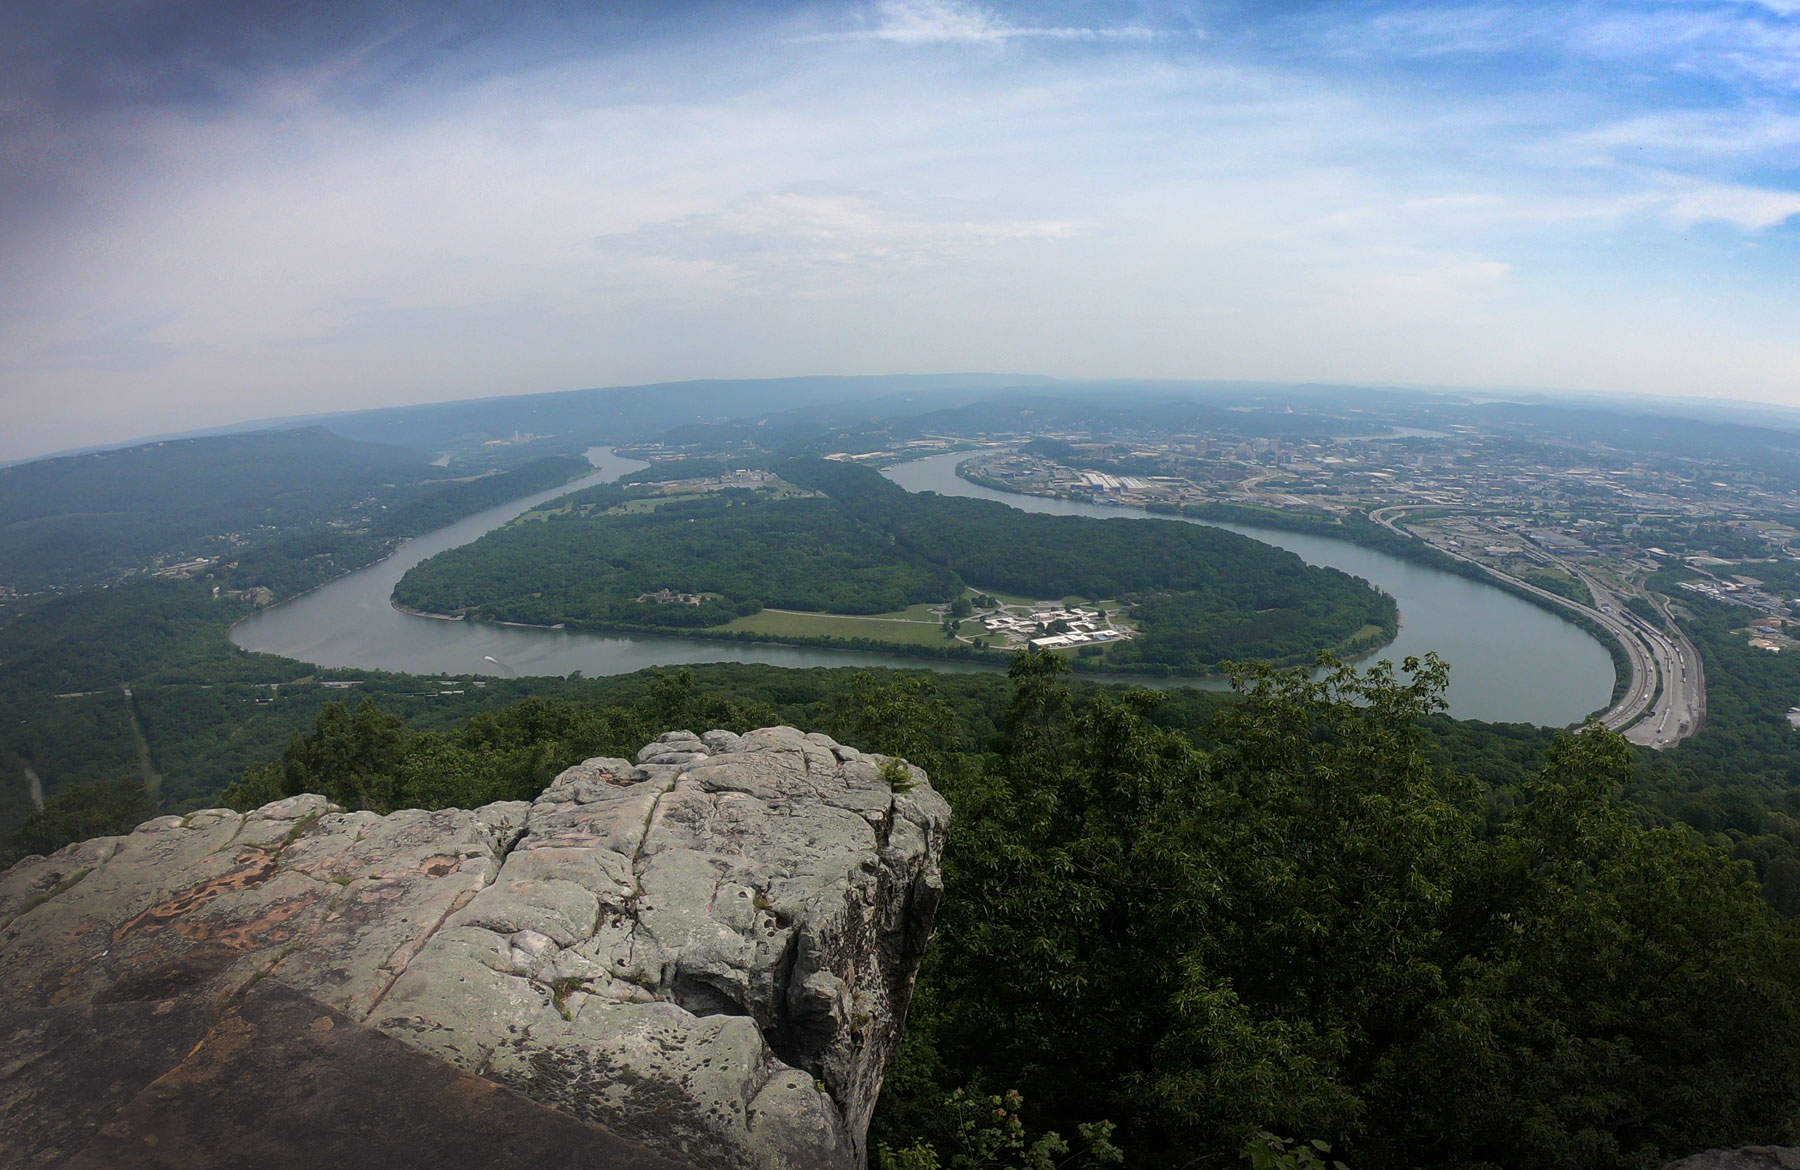 Stone overlook of Moccasin Bend in Chickamauga and Chattanooga National Military Park, Tennessee